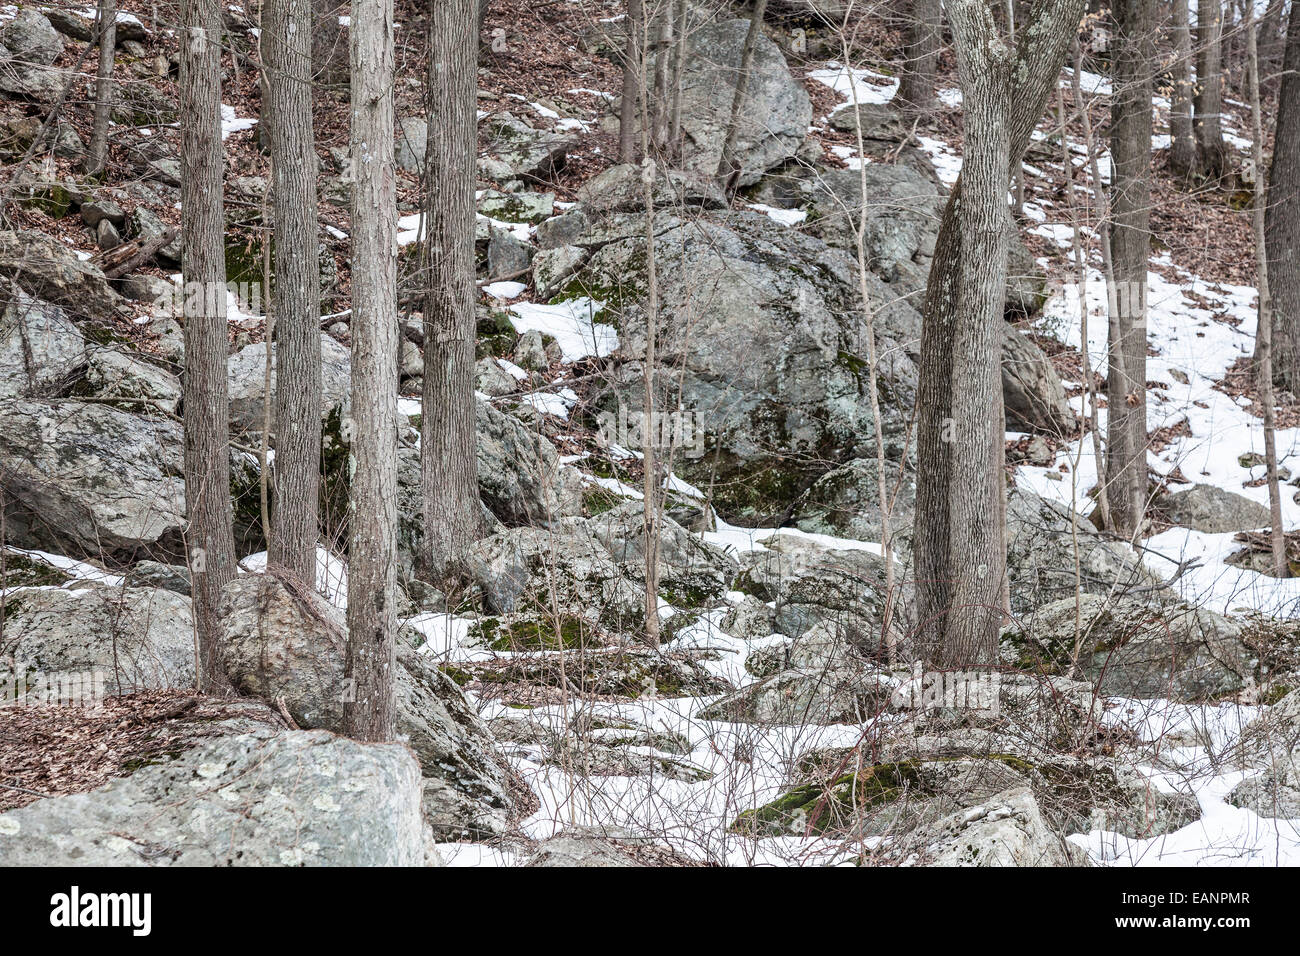 The grays and browns of the winter landscape in the woods of Durham Connecticut - Stock Image